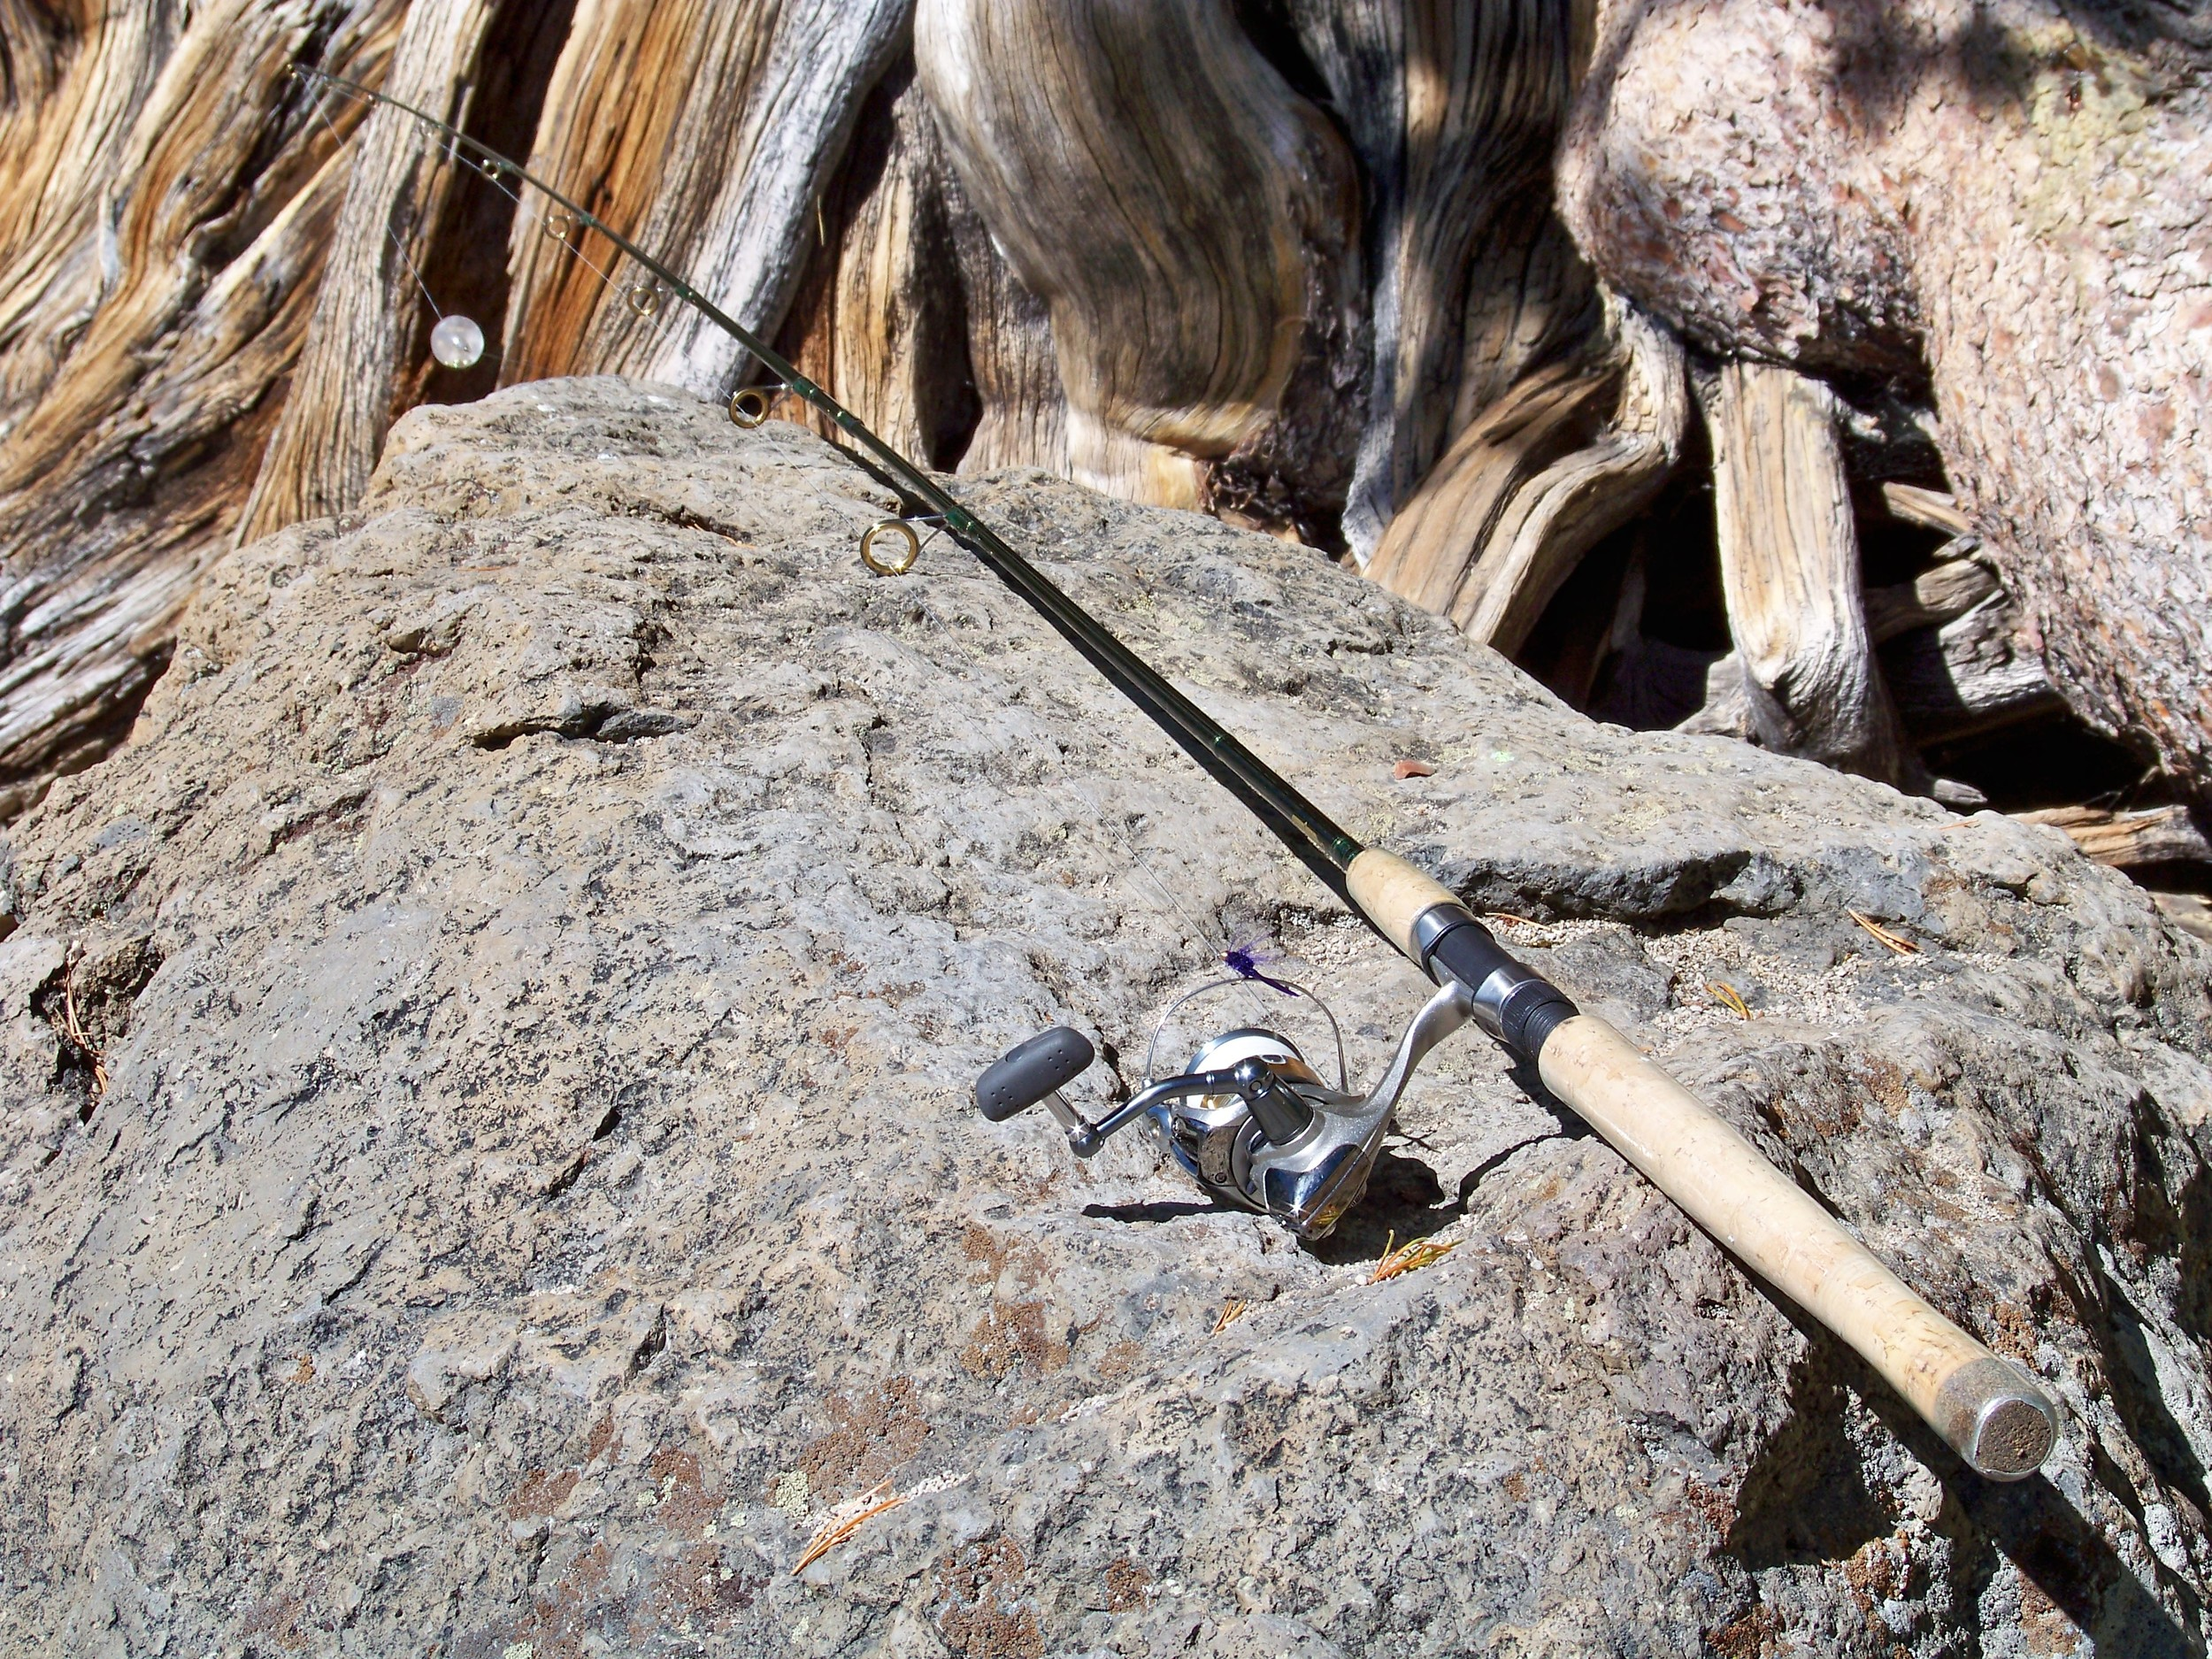 "7'-6"" Lamiglas Rogue River Special, this two piece spinning 'stick' makes an easy travel rod."